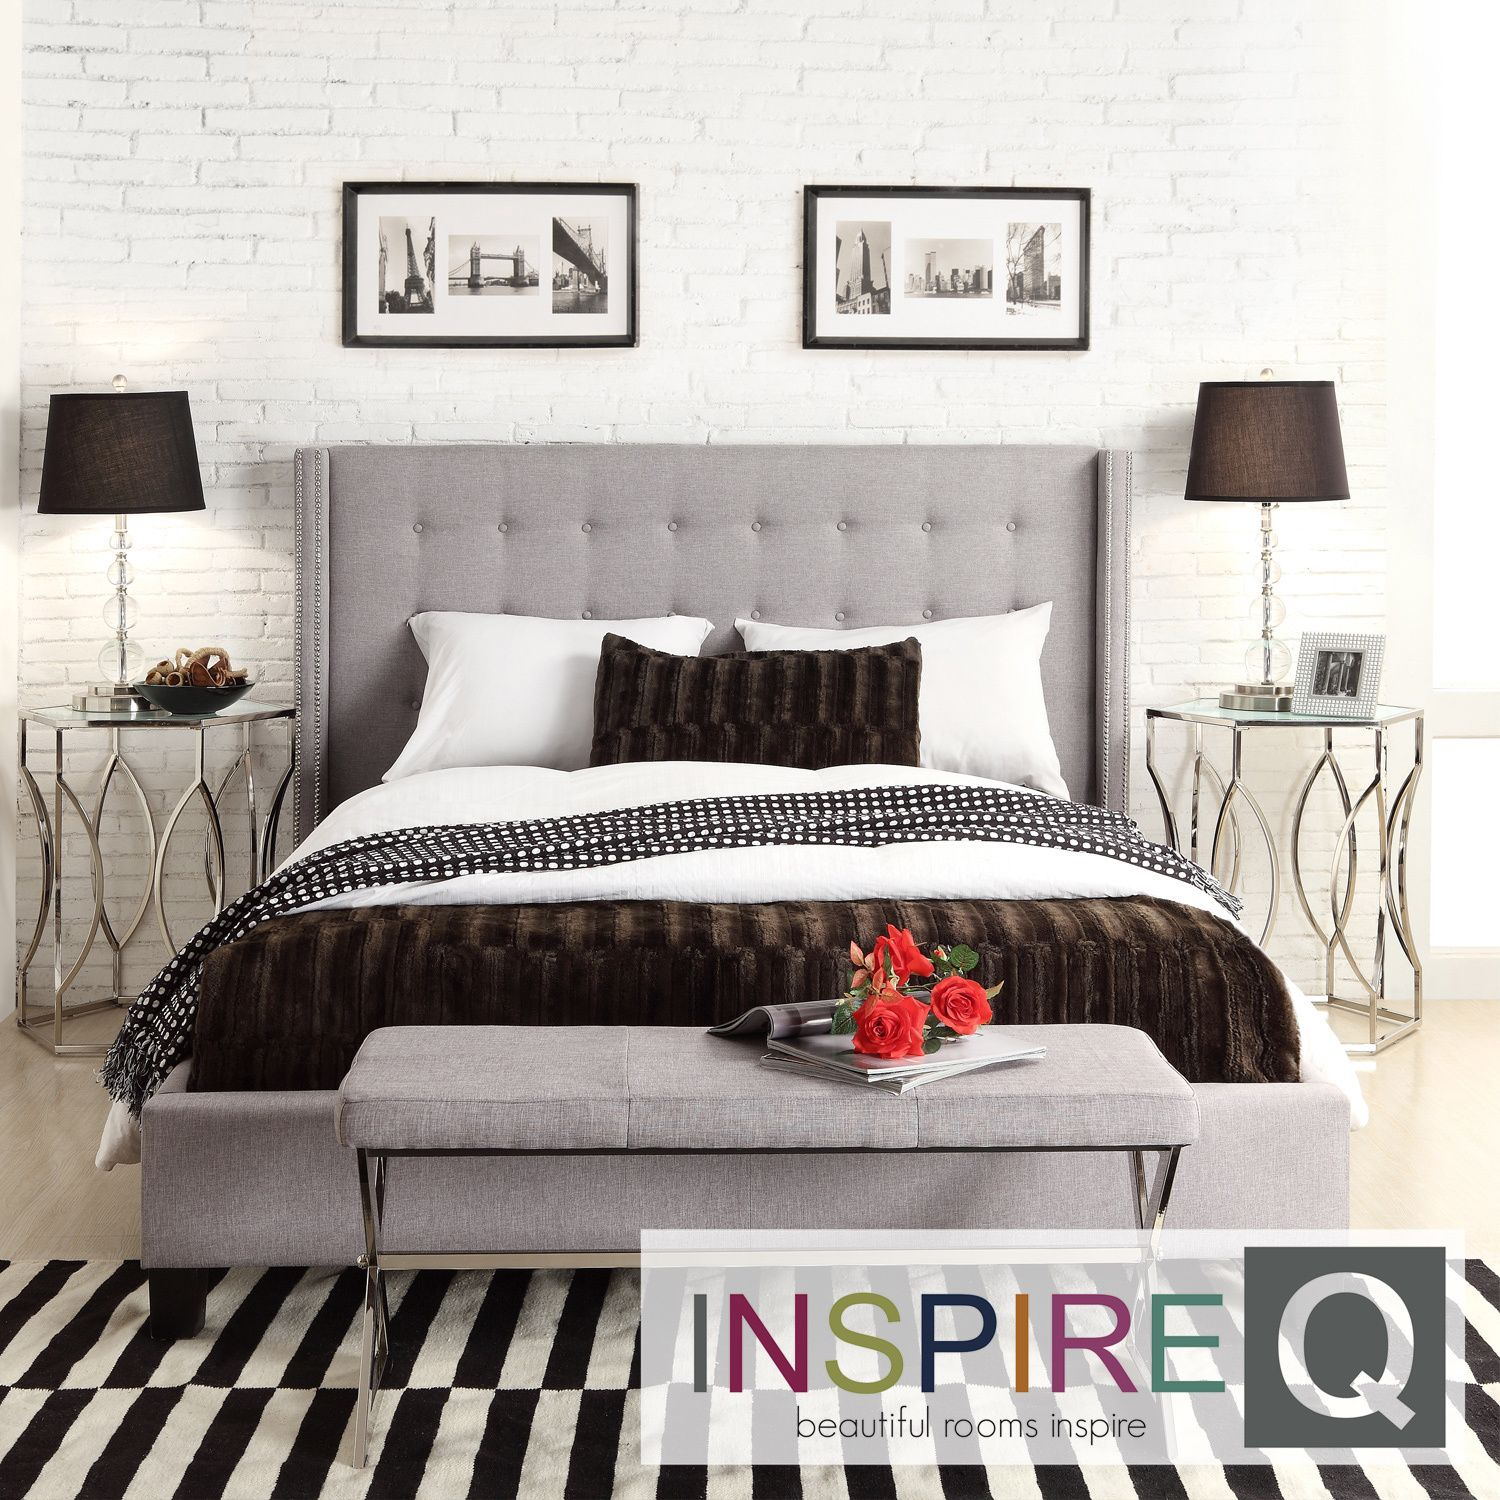 INSPIRE Q Marion Grey Linen Nailhead Wingback Tufted Upholstered Bed by iNSPIRE  Q